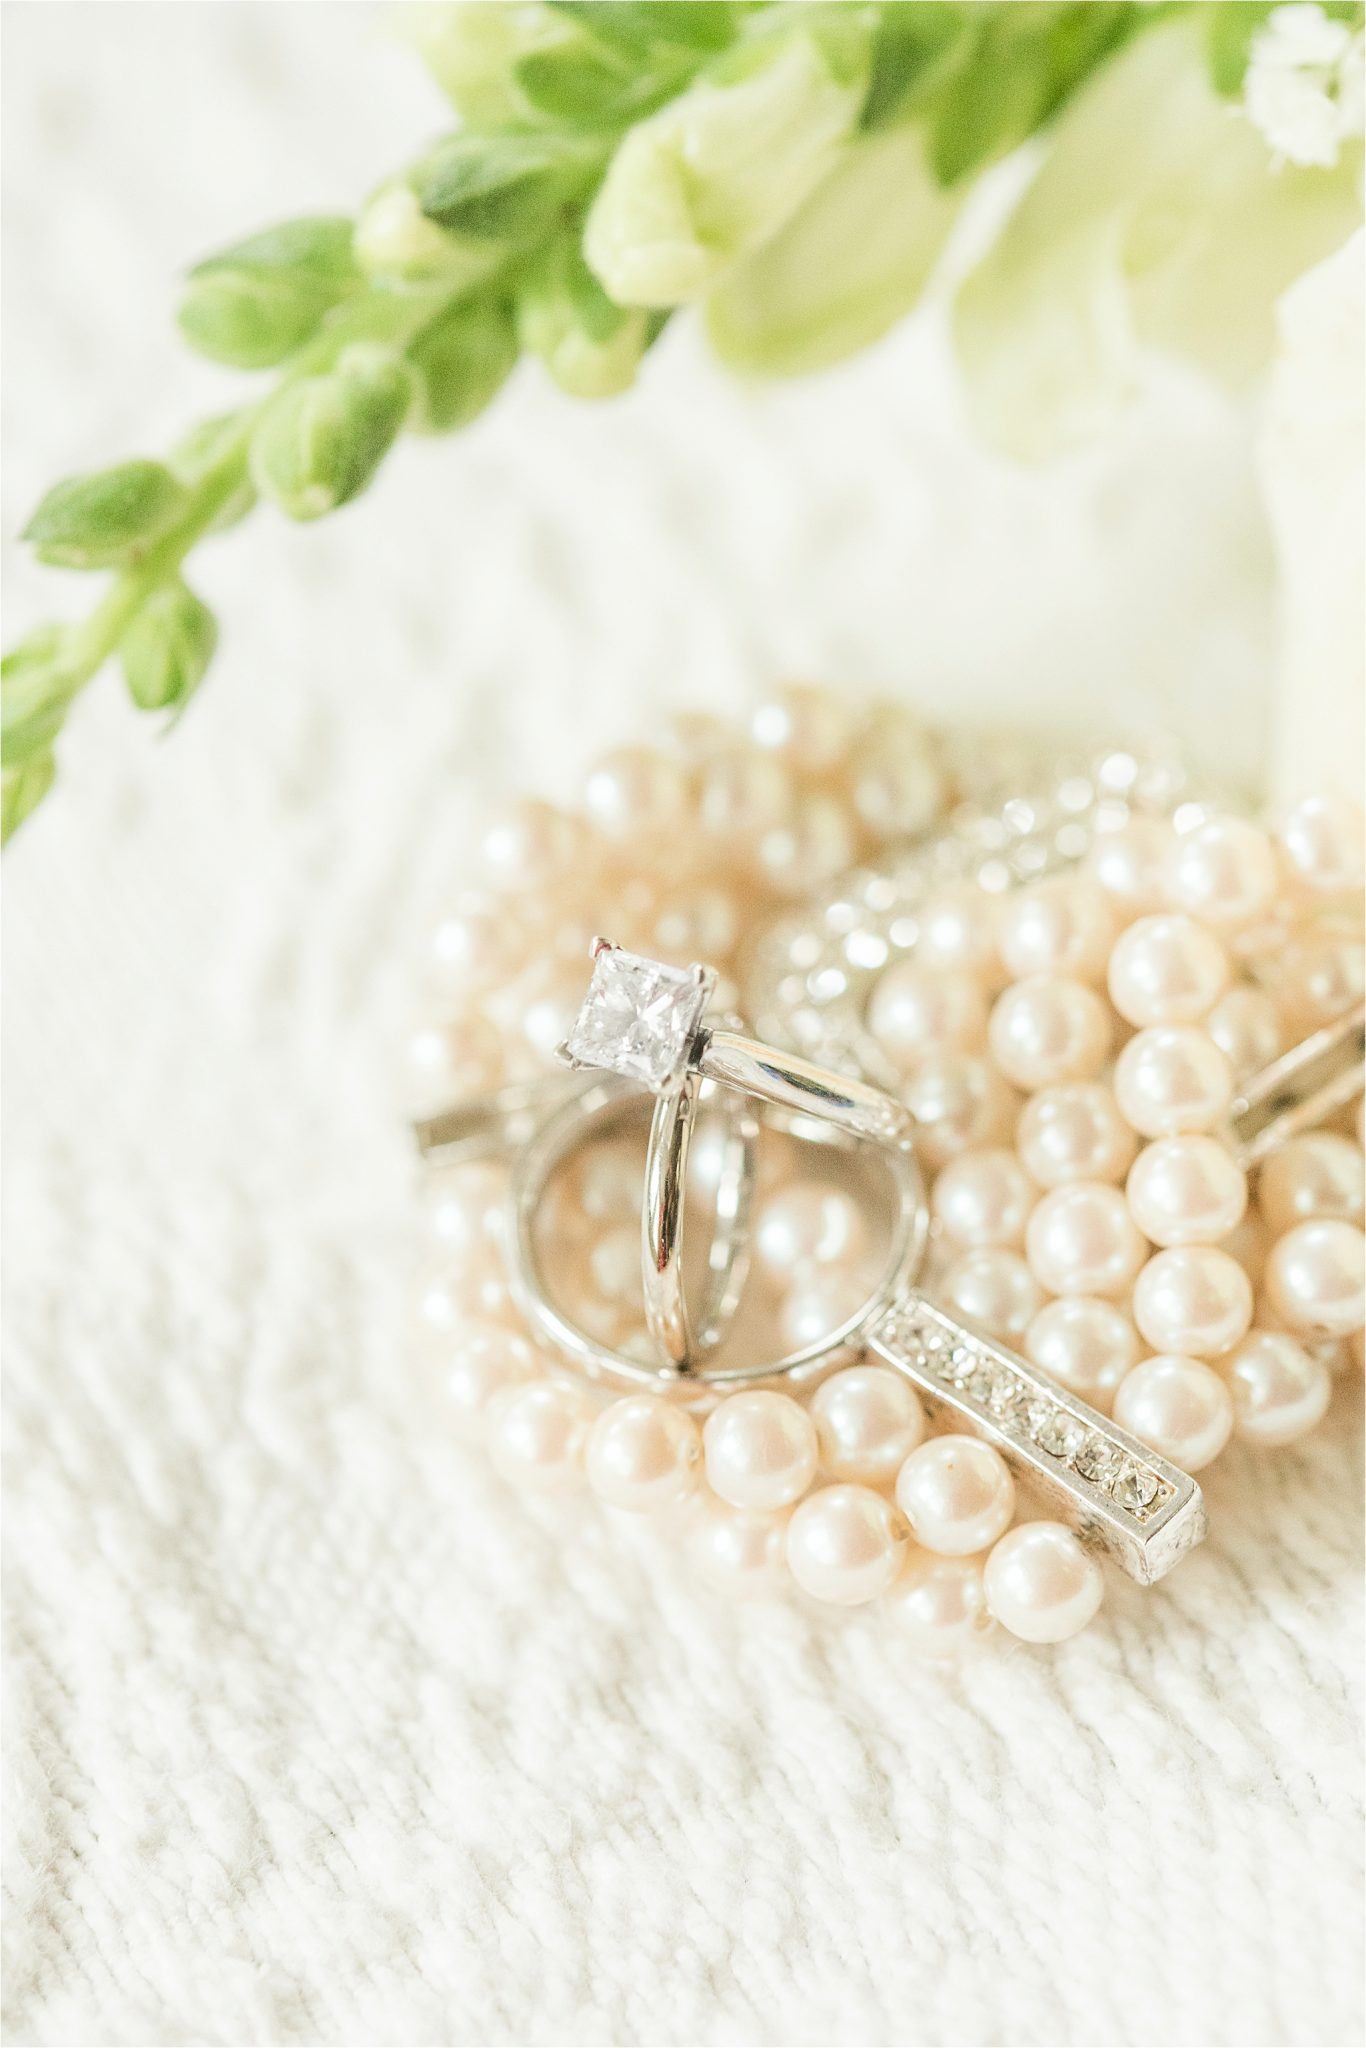 Princess cut wedding ring-white gold engagement ring-bride and groom ring shot-pearl wedding details-one carrot wedding rings